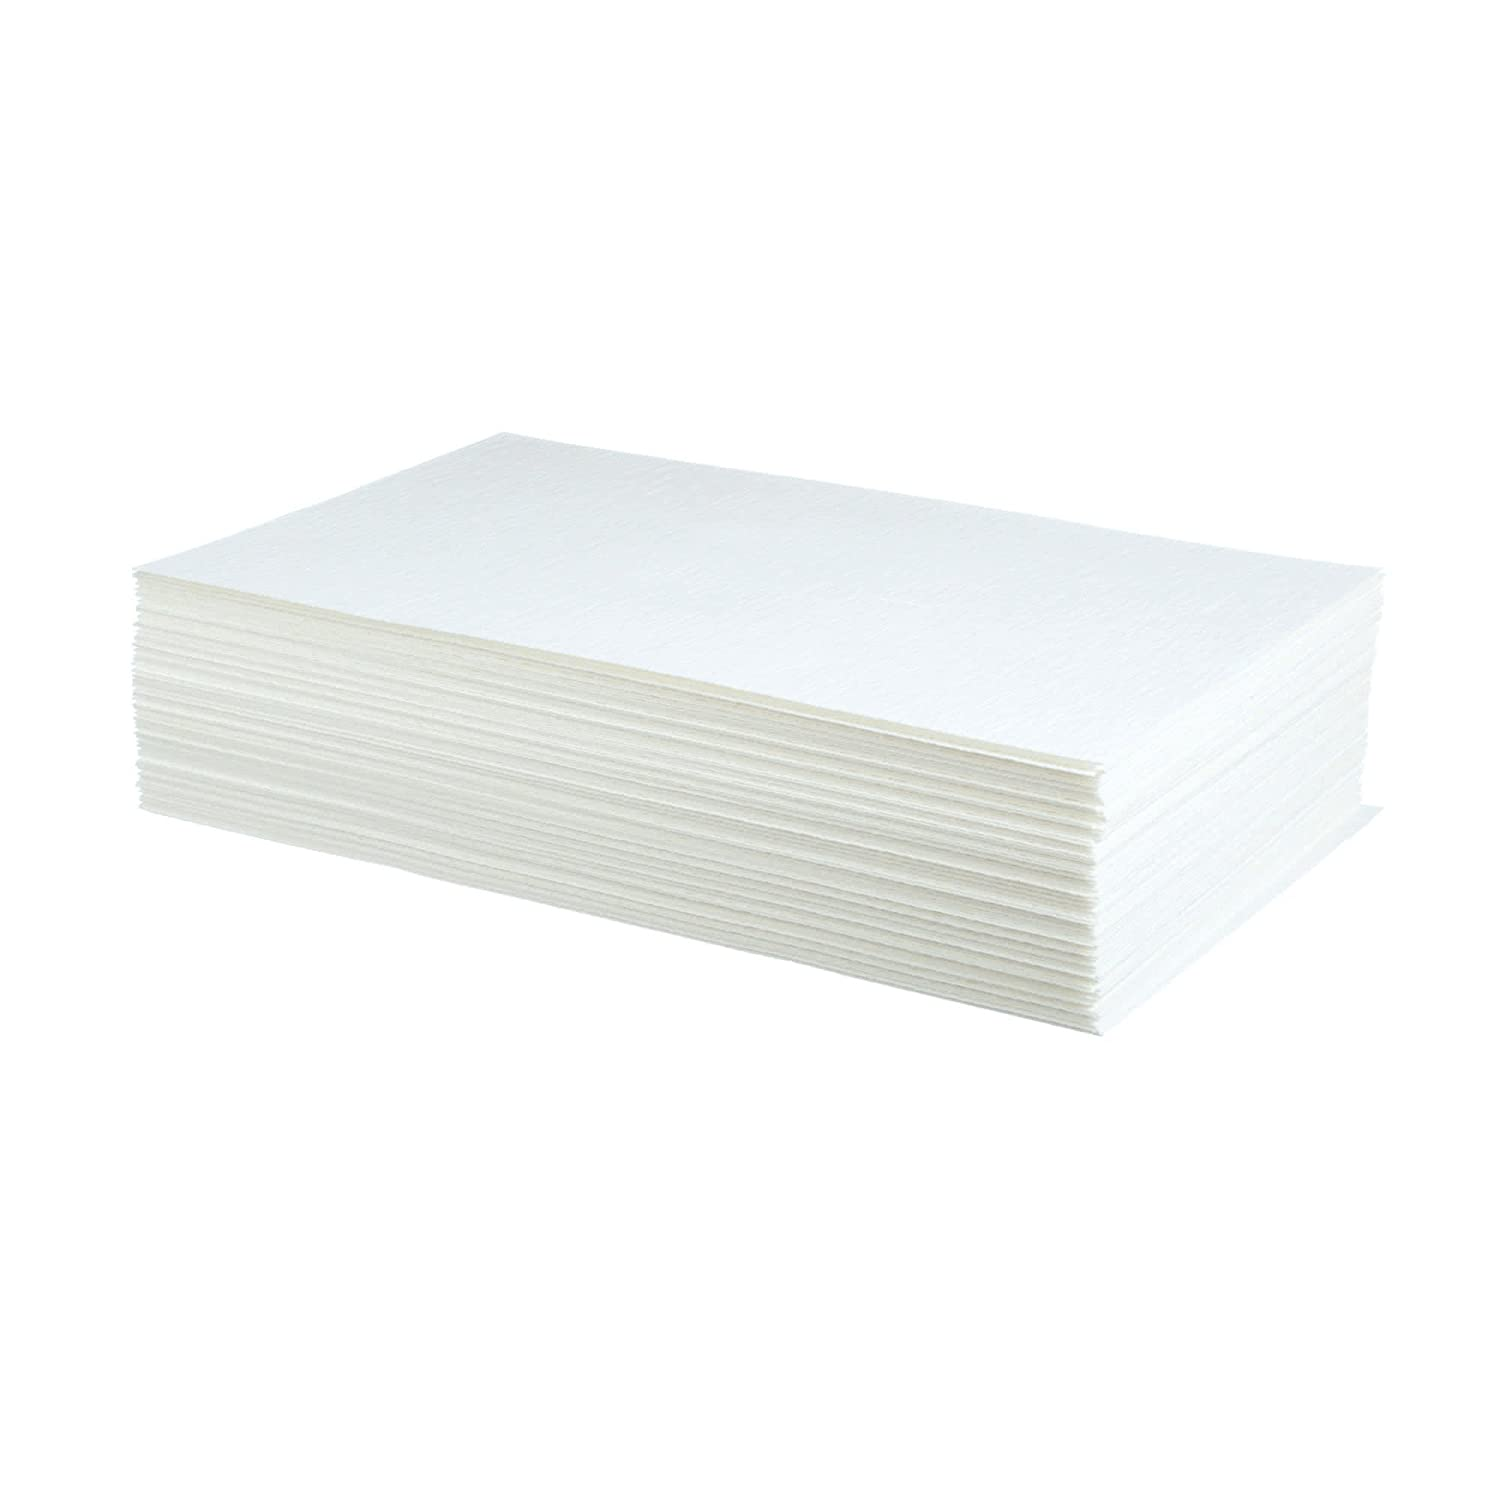 "OCSParts FS1625 Fryer Filter Paper, Filter Sheet, 16.50"" x 25.50"", Replaces Frymaster 803-0170, Paper"